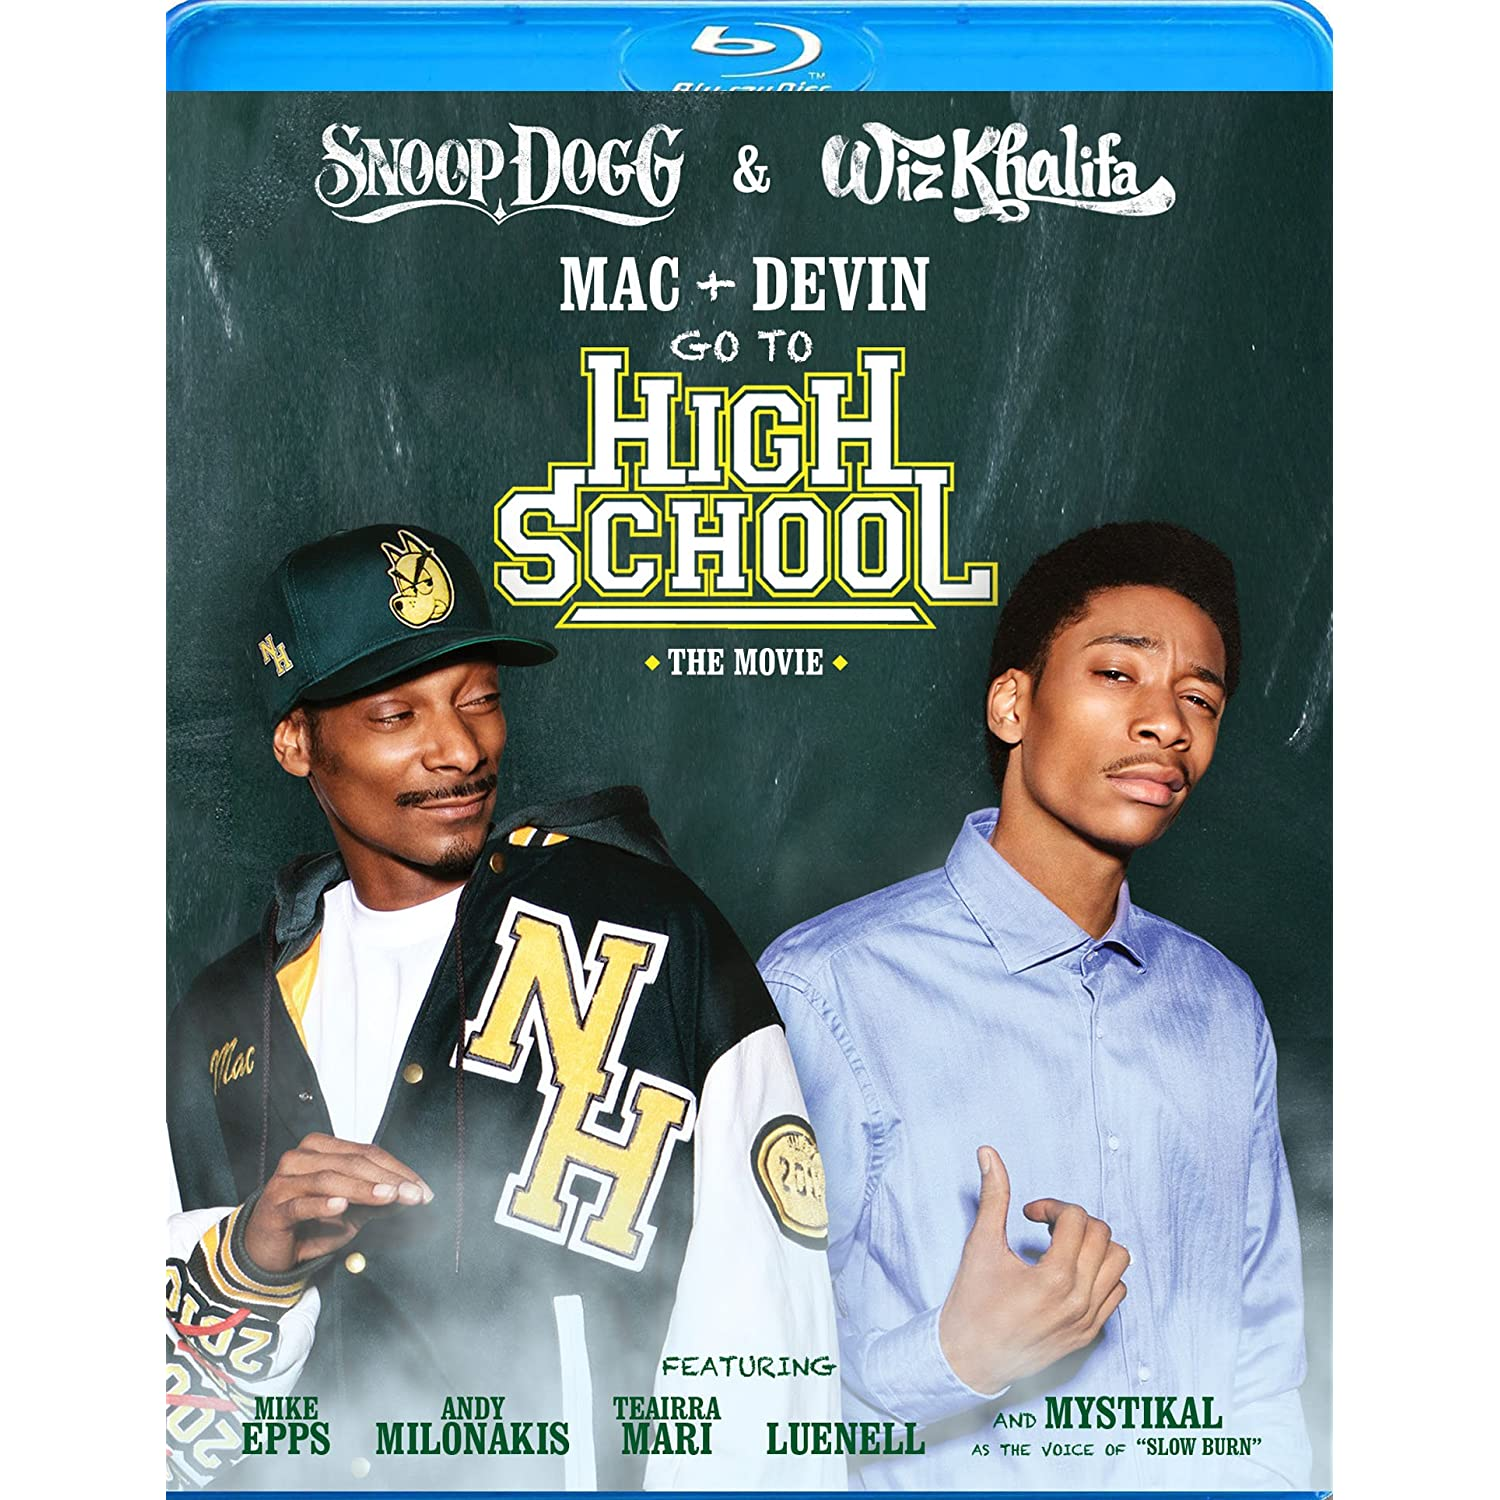 mac and devin go to high school soundtrack